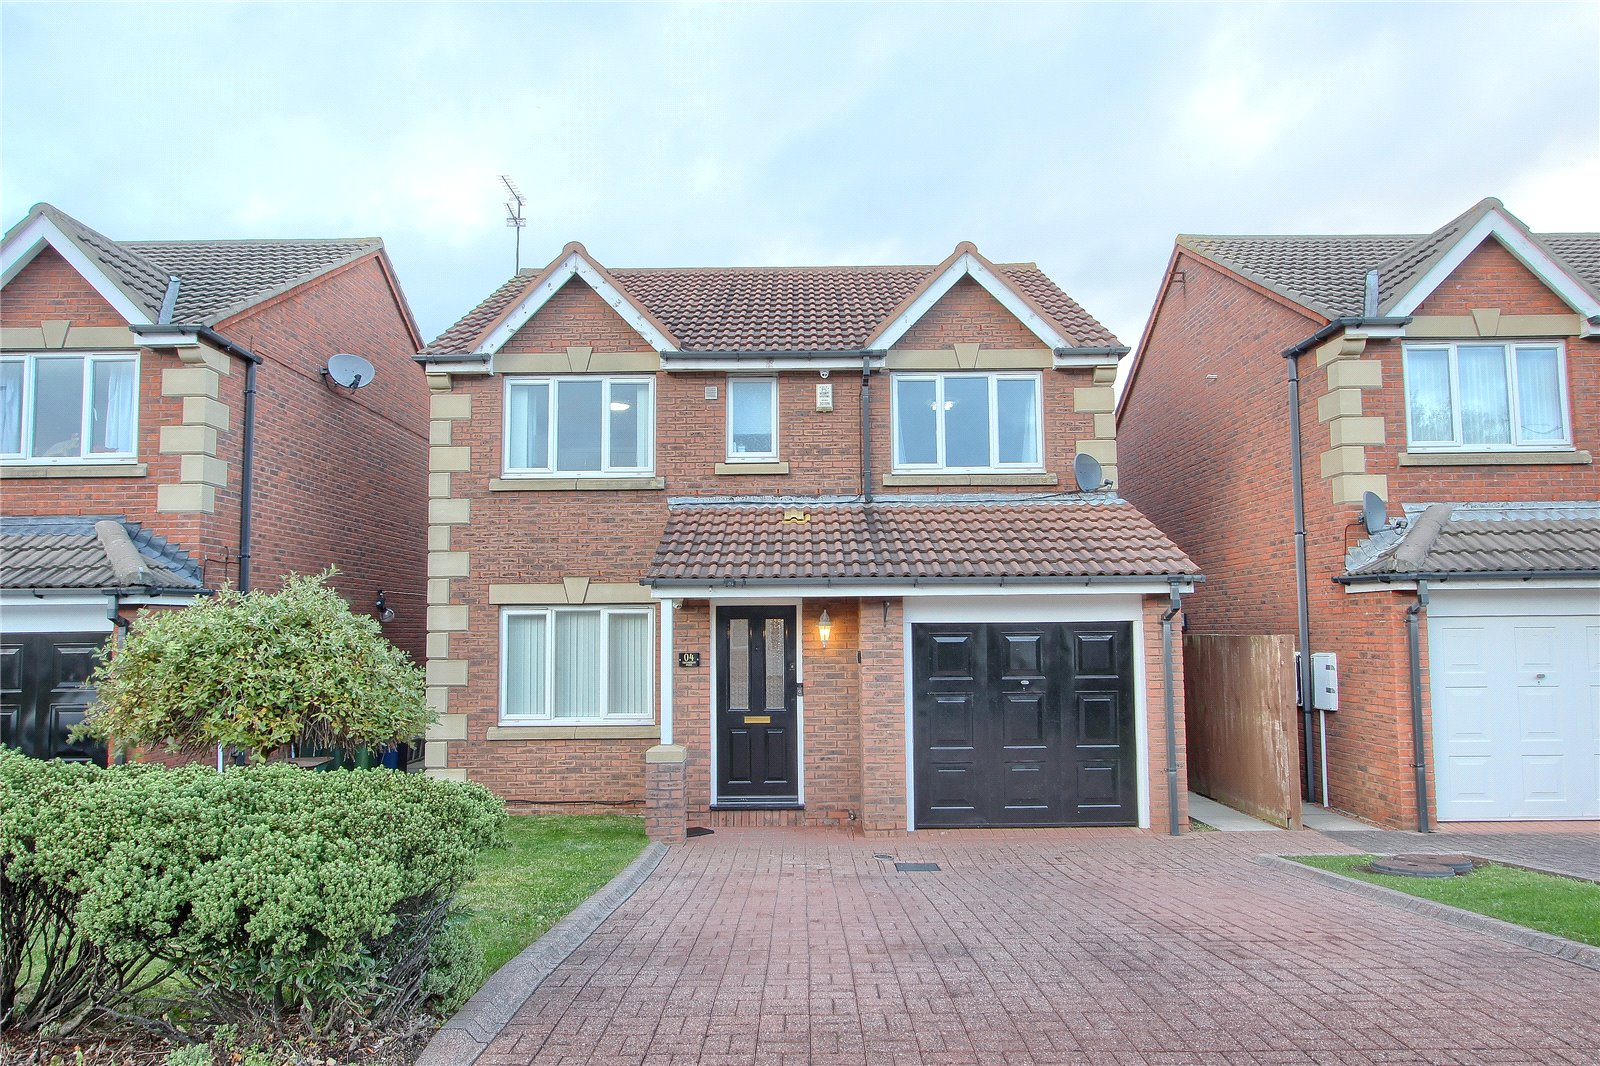 4 bed house for sale in Trevarrian Drive, Redcar 1